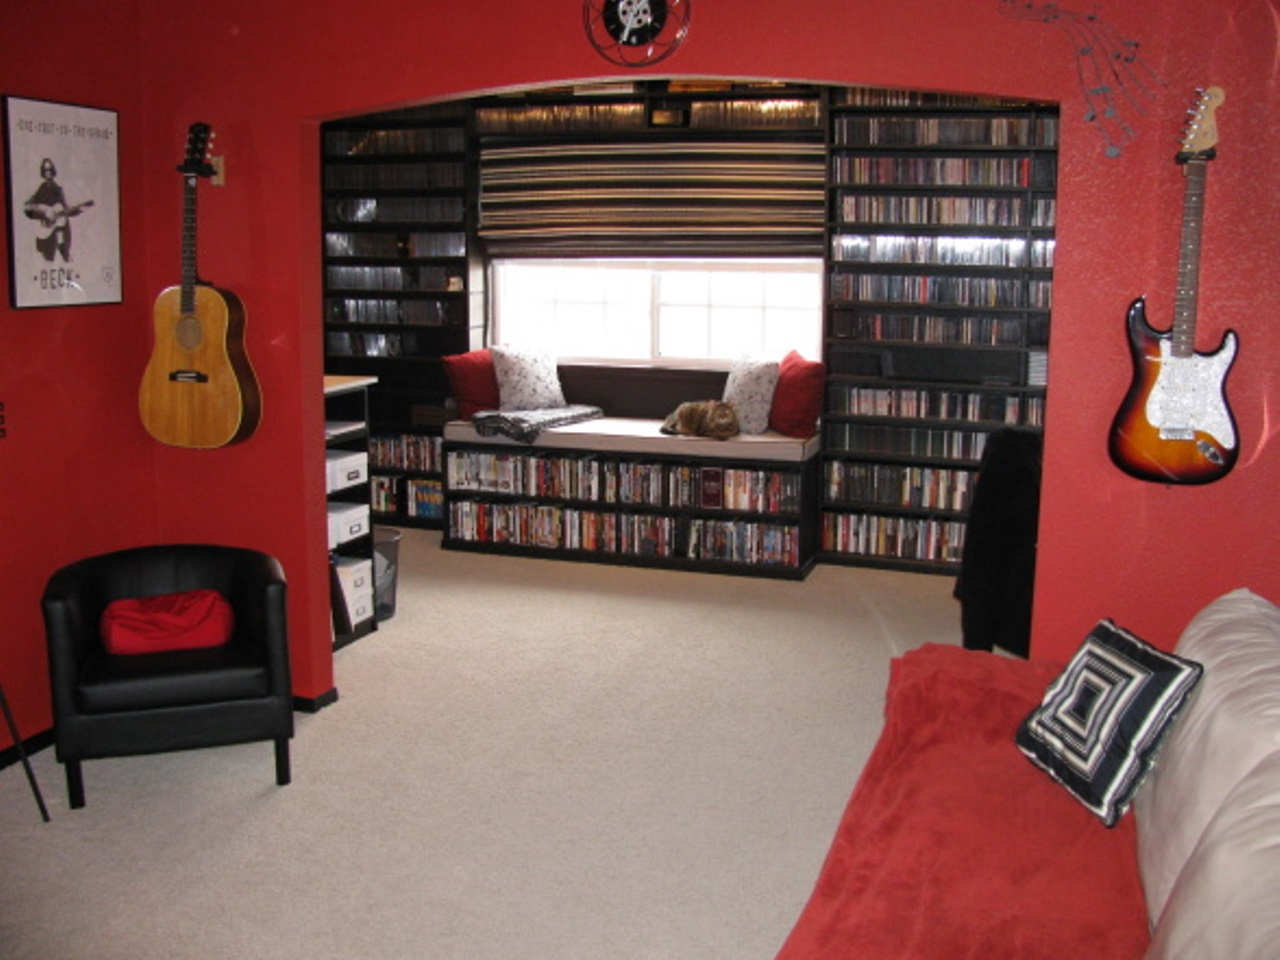 http://audiophilereview.com/images/roon2.jpg